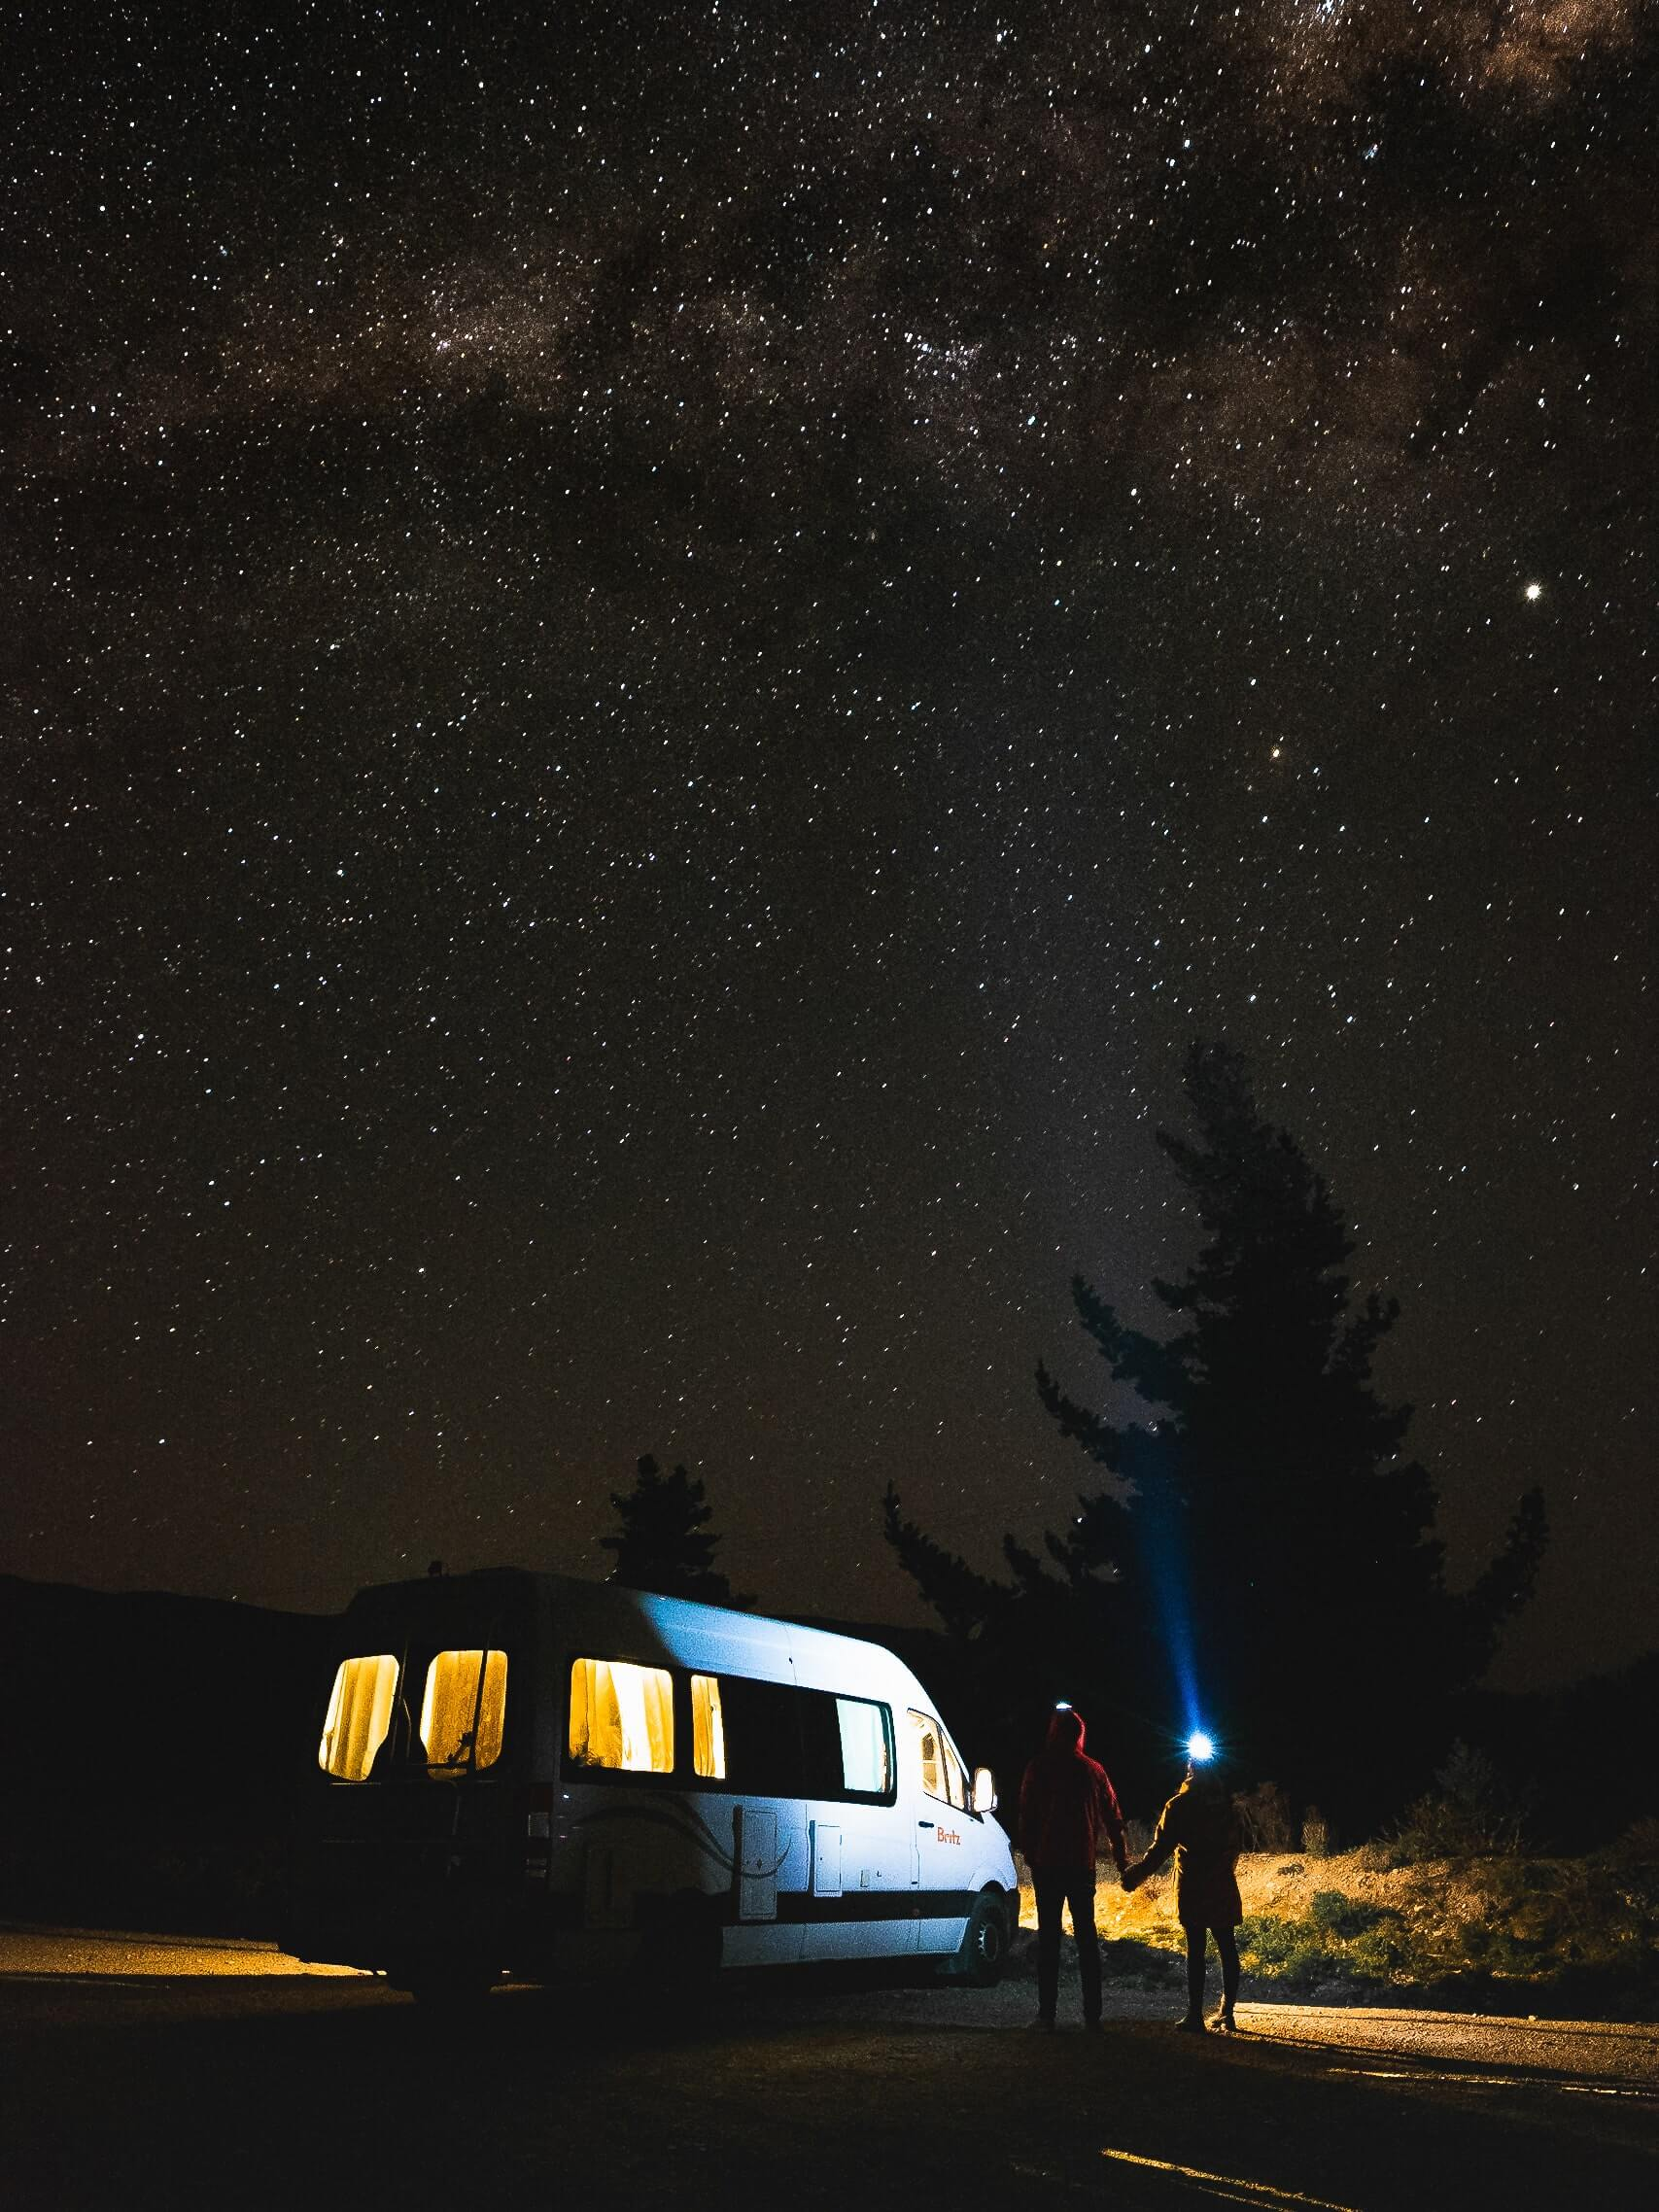 Starry sky over the South Island of New Zealand